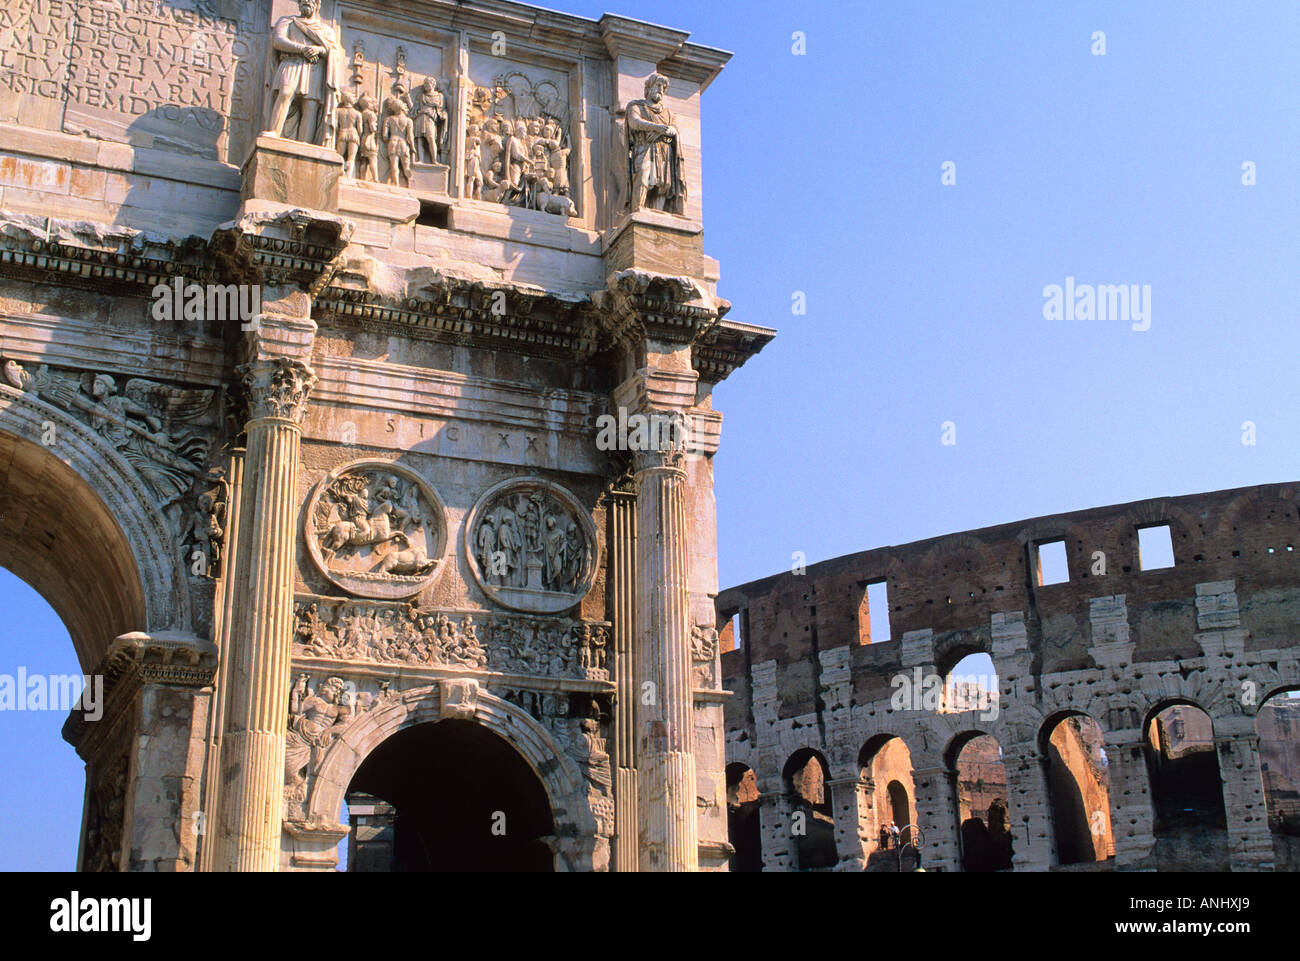 Rome Italy The Arch of Constantine and The Colosseum Europe Sandra Baker - Stock Image